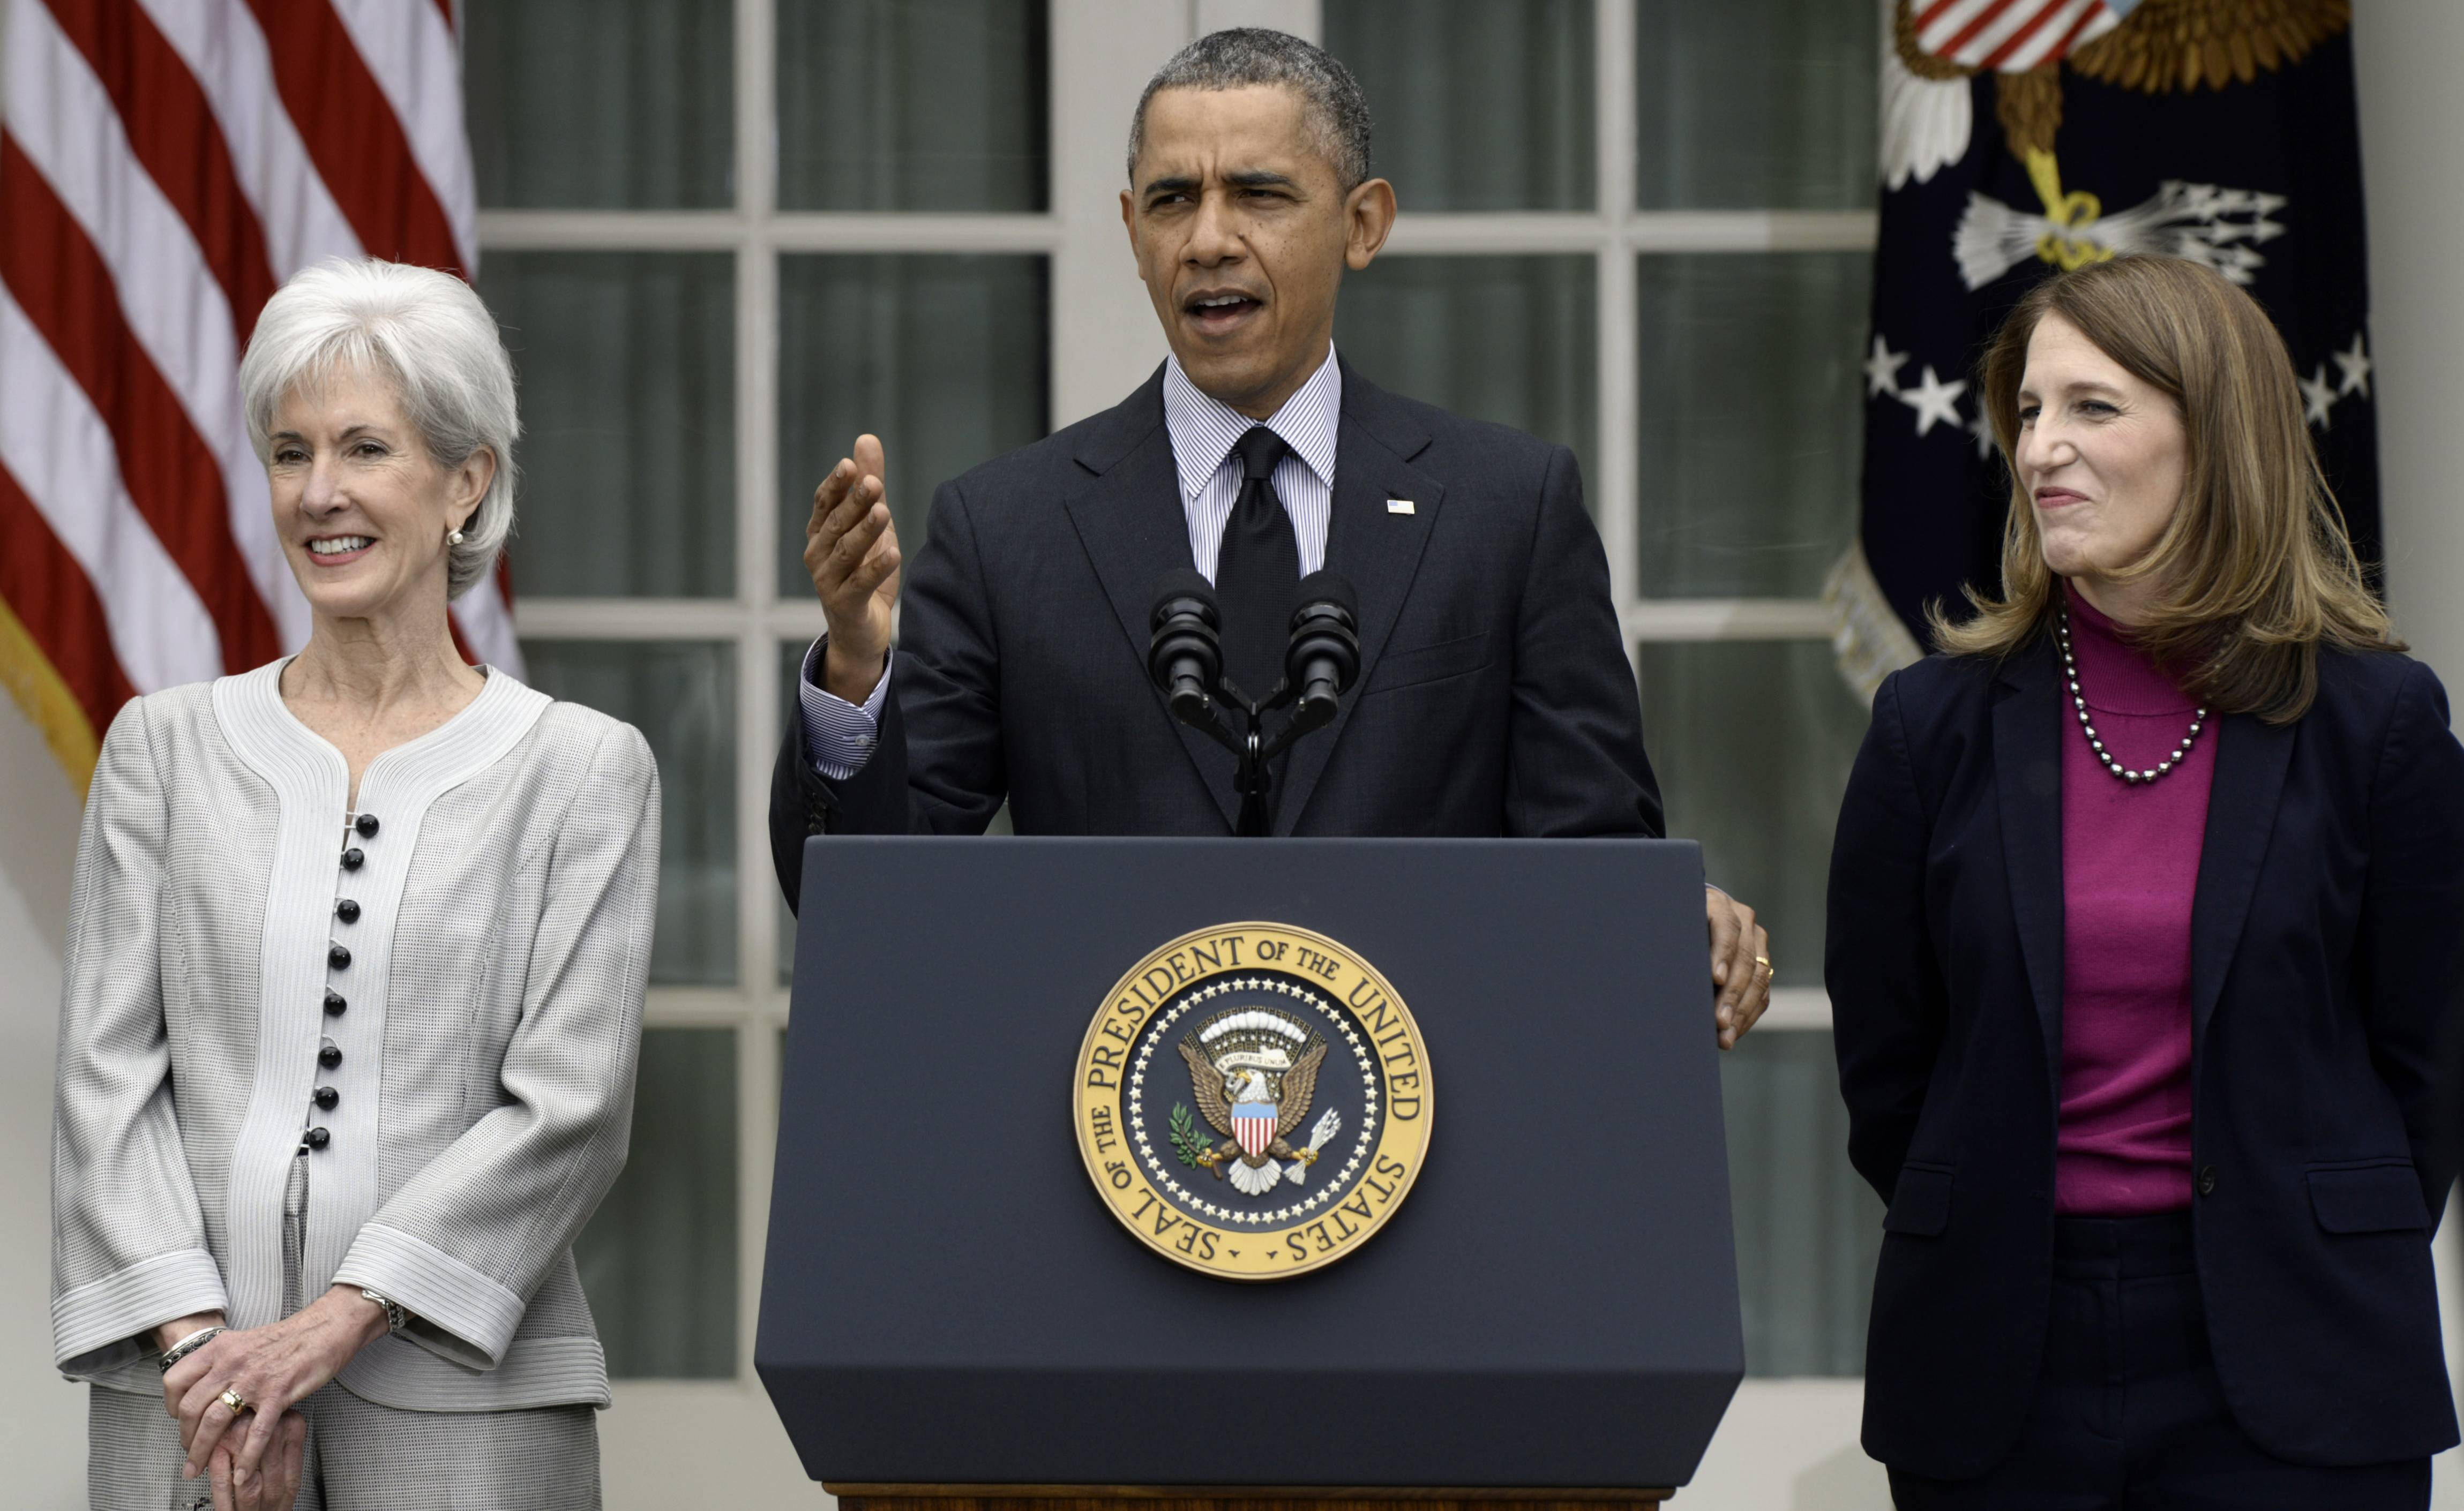 This April 11, 2014 file photo shows President Barack Obama, flanked by outgoing Health and Human Services Secretary Kathleen Sebelius, left, and his nominee to replace her, current Budget Director Sylvia Mathews Burwell, speaking in the Rose Garden of the White House in Washington.